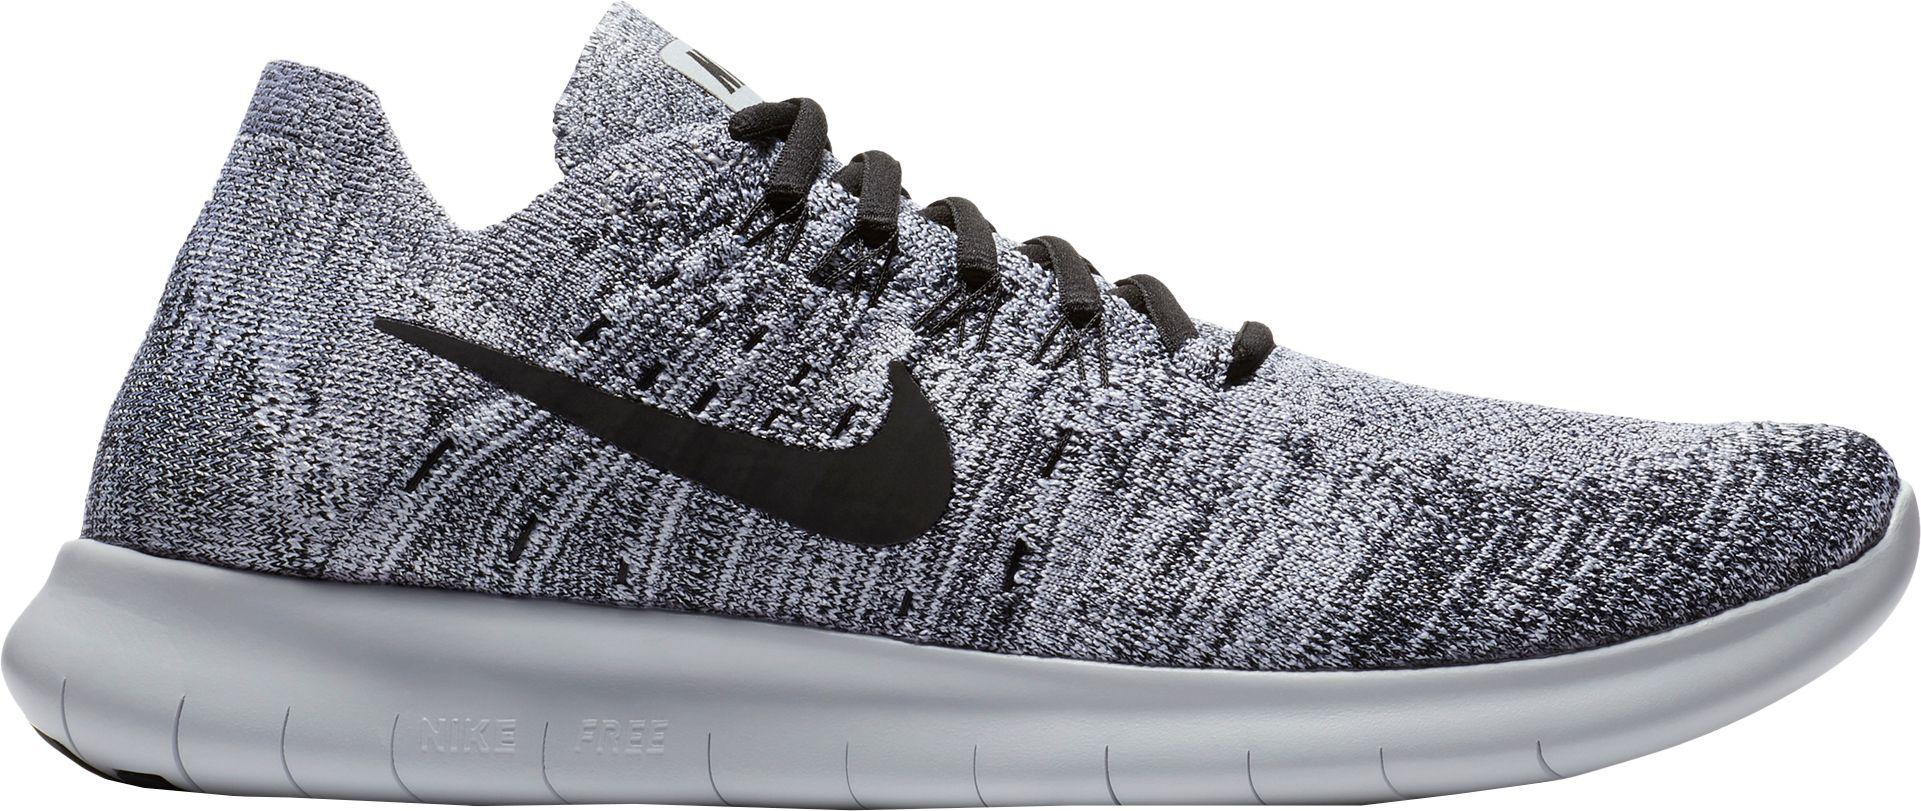 competitive price eec9d 0c825 ... shop nike gray free rn flyknit 2017 running shoes for men lyst 4a1a3  790ee